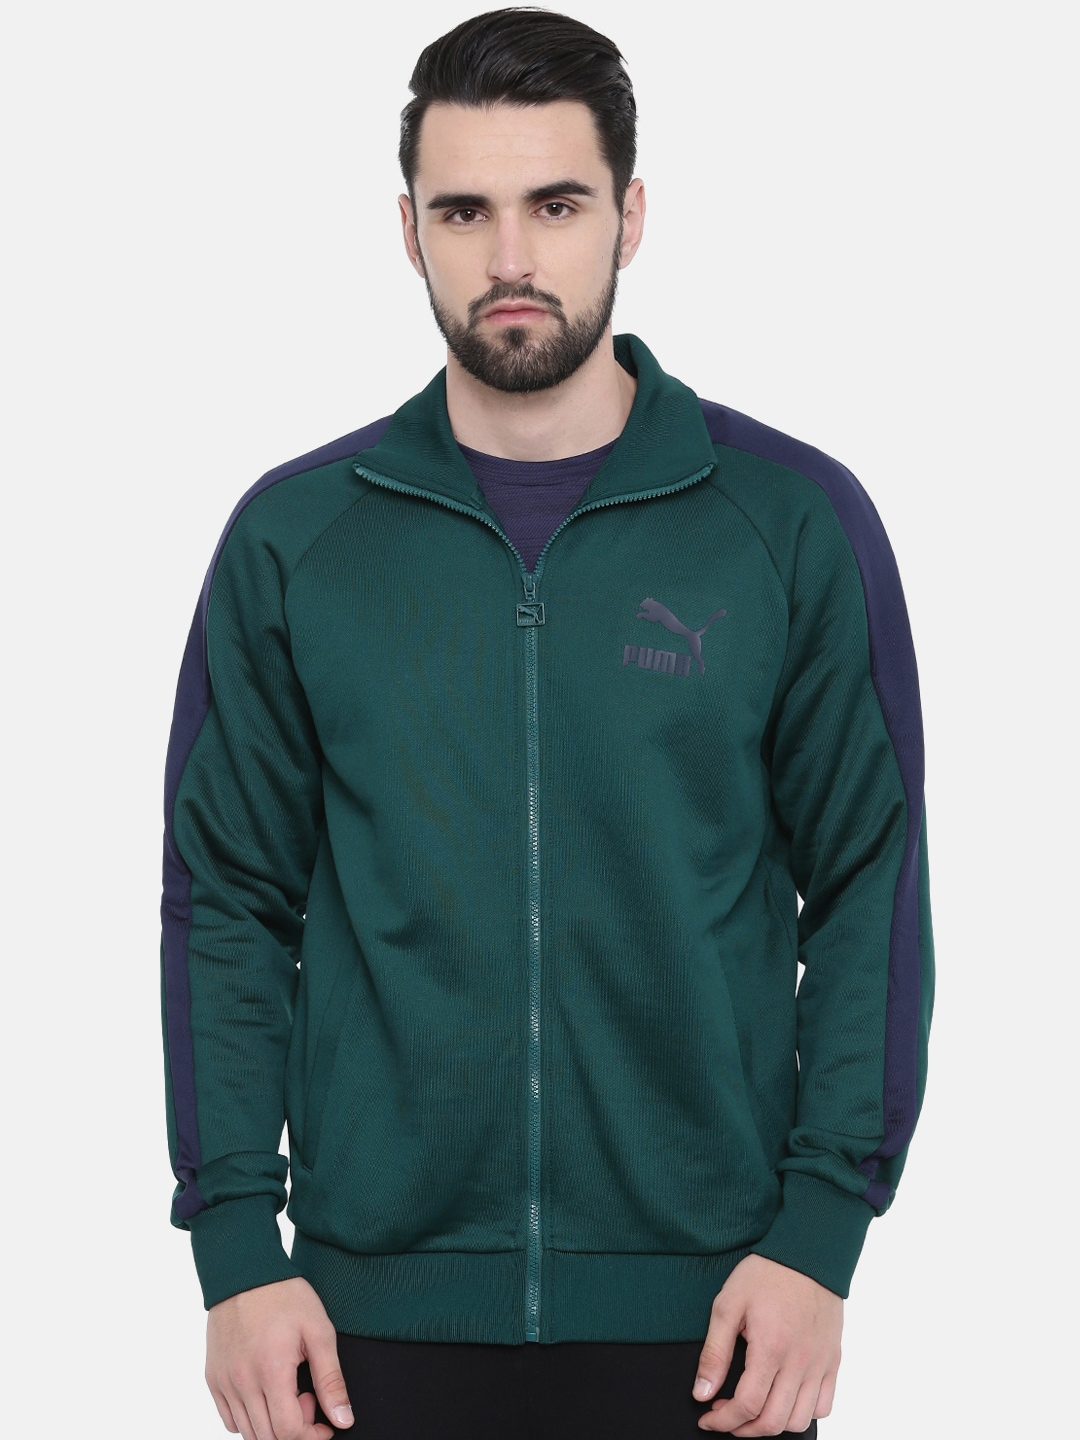 5911ca75c828 Puma Jacket - Buy original Puma Jackets Online in India